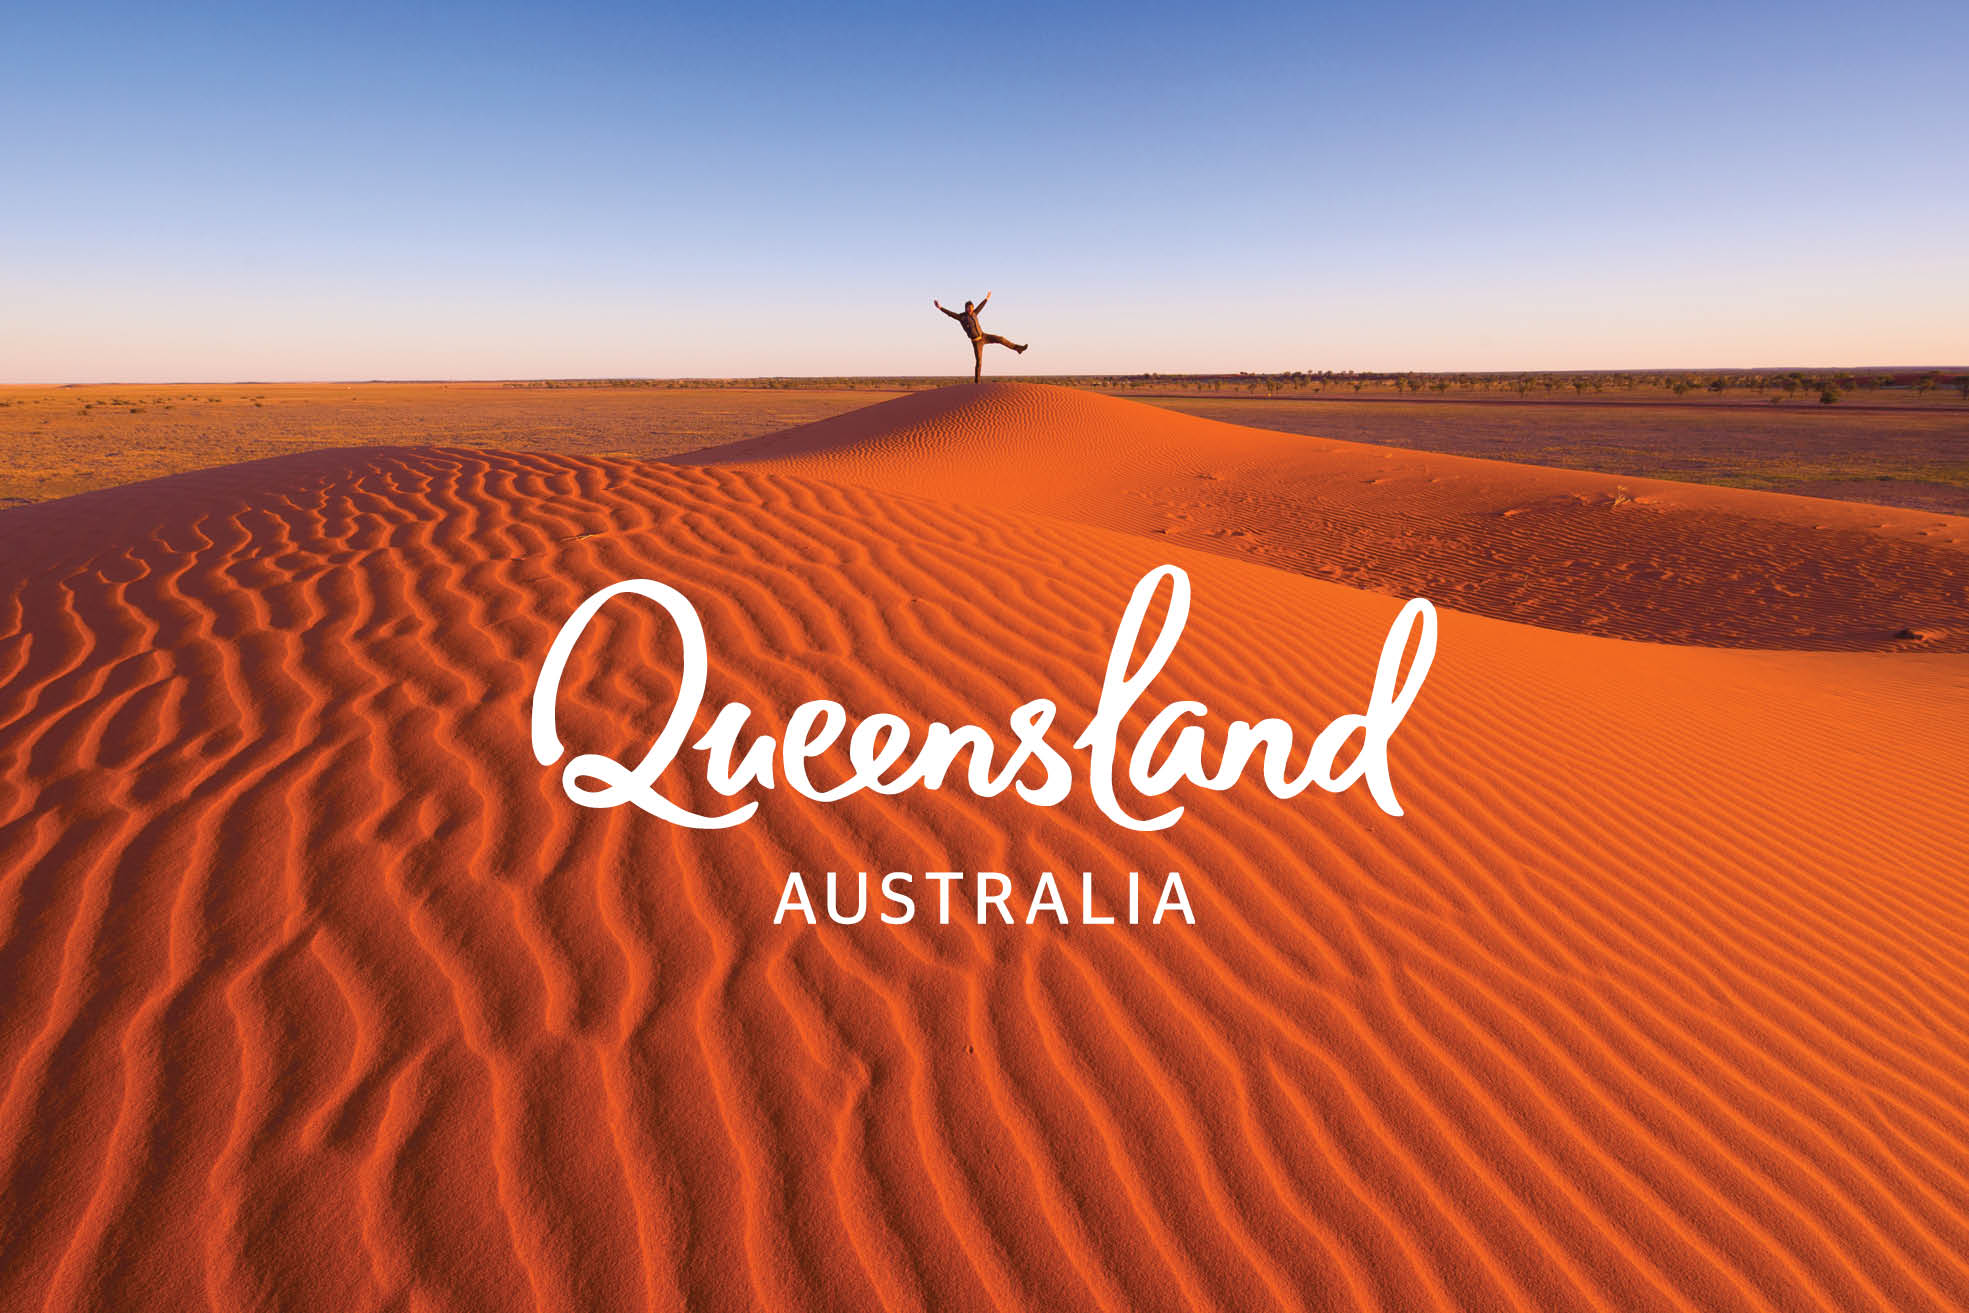 Tourism and Events Queensland appoints Rumble as its master brand creative agency